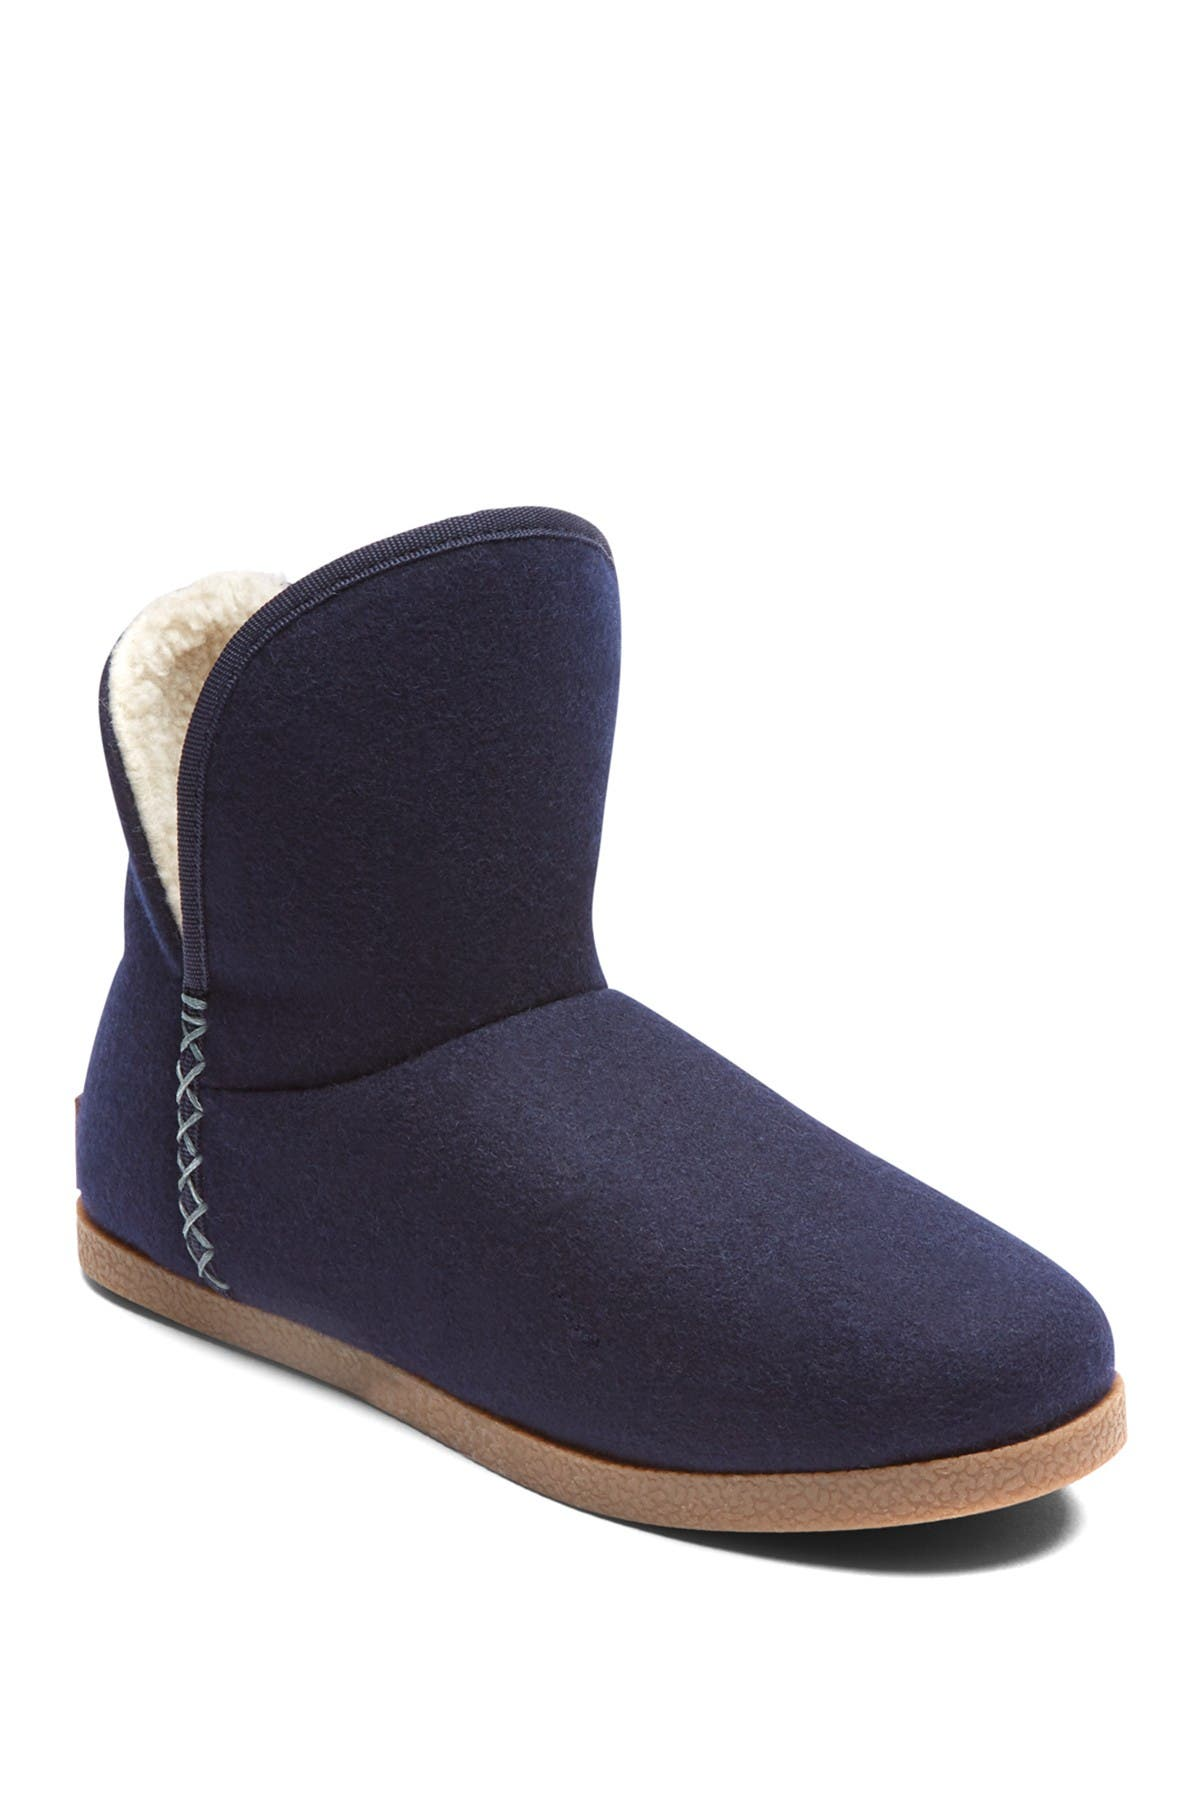 Image of Rockport truTECH Veda Faux Fur Lined Slipper Boot